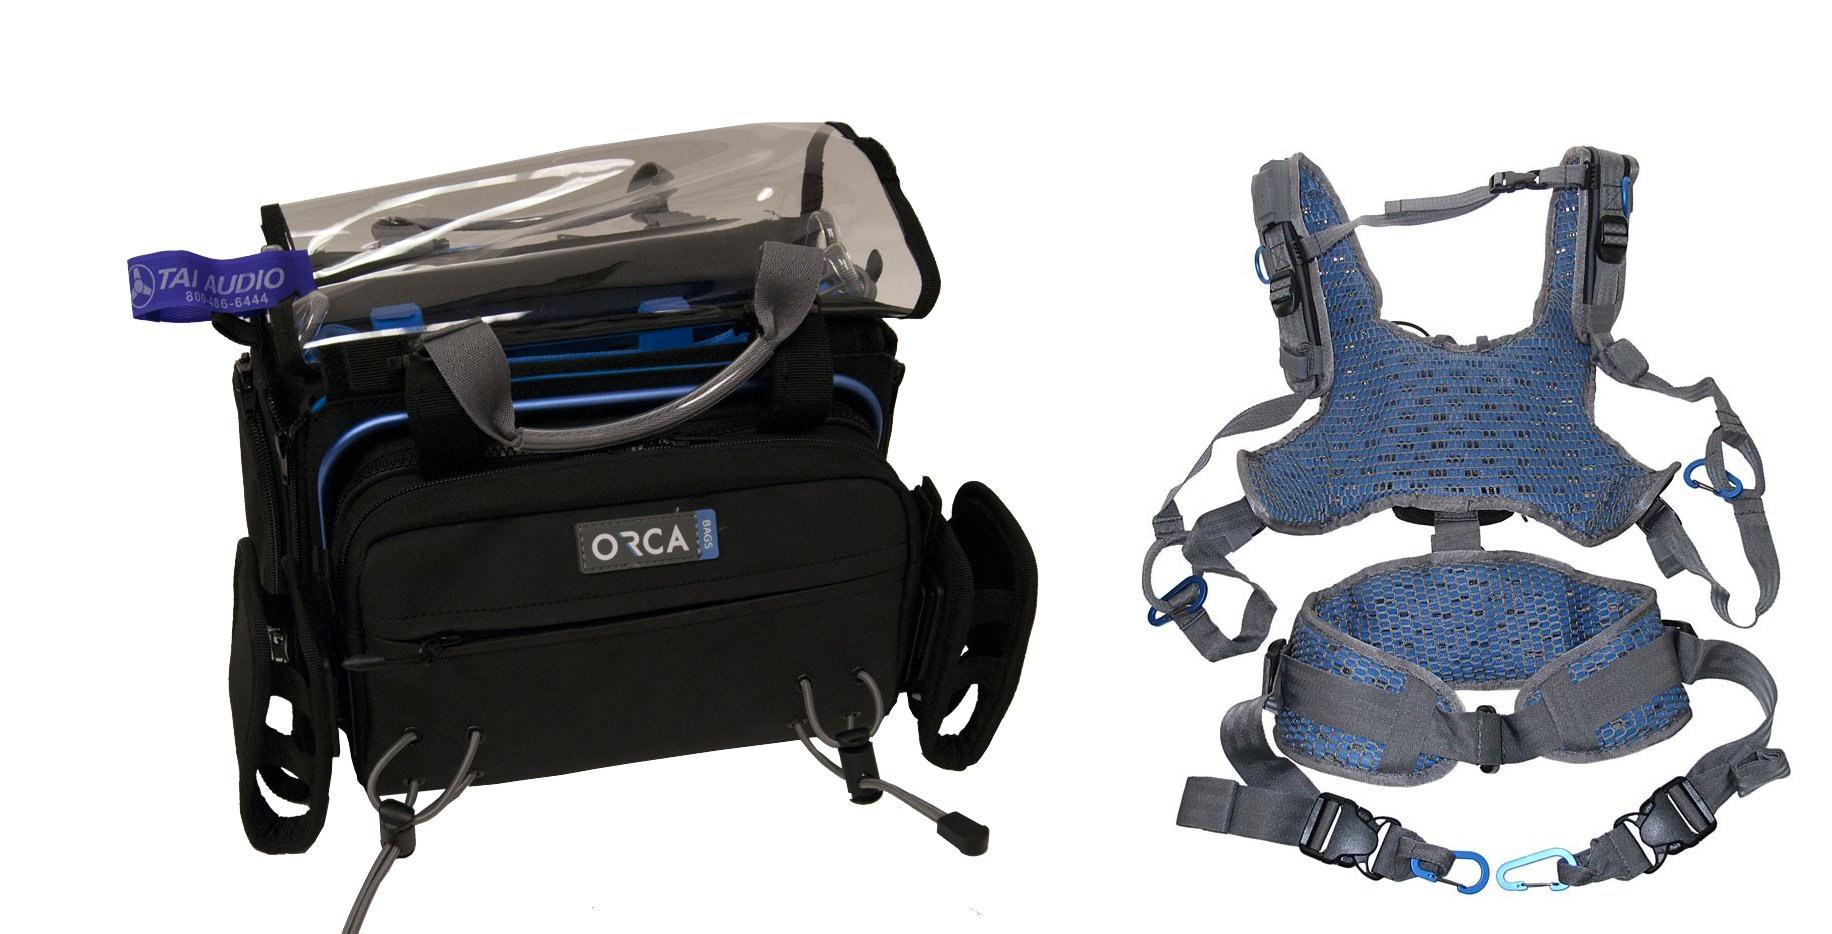 Orca OR-34 Audio Bag & Orca OR-40 Harness